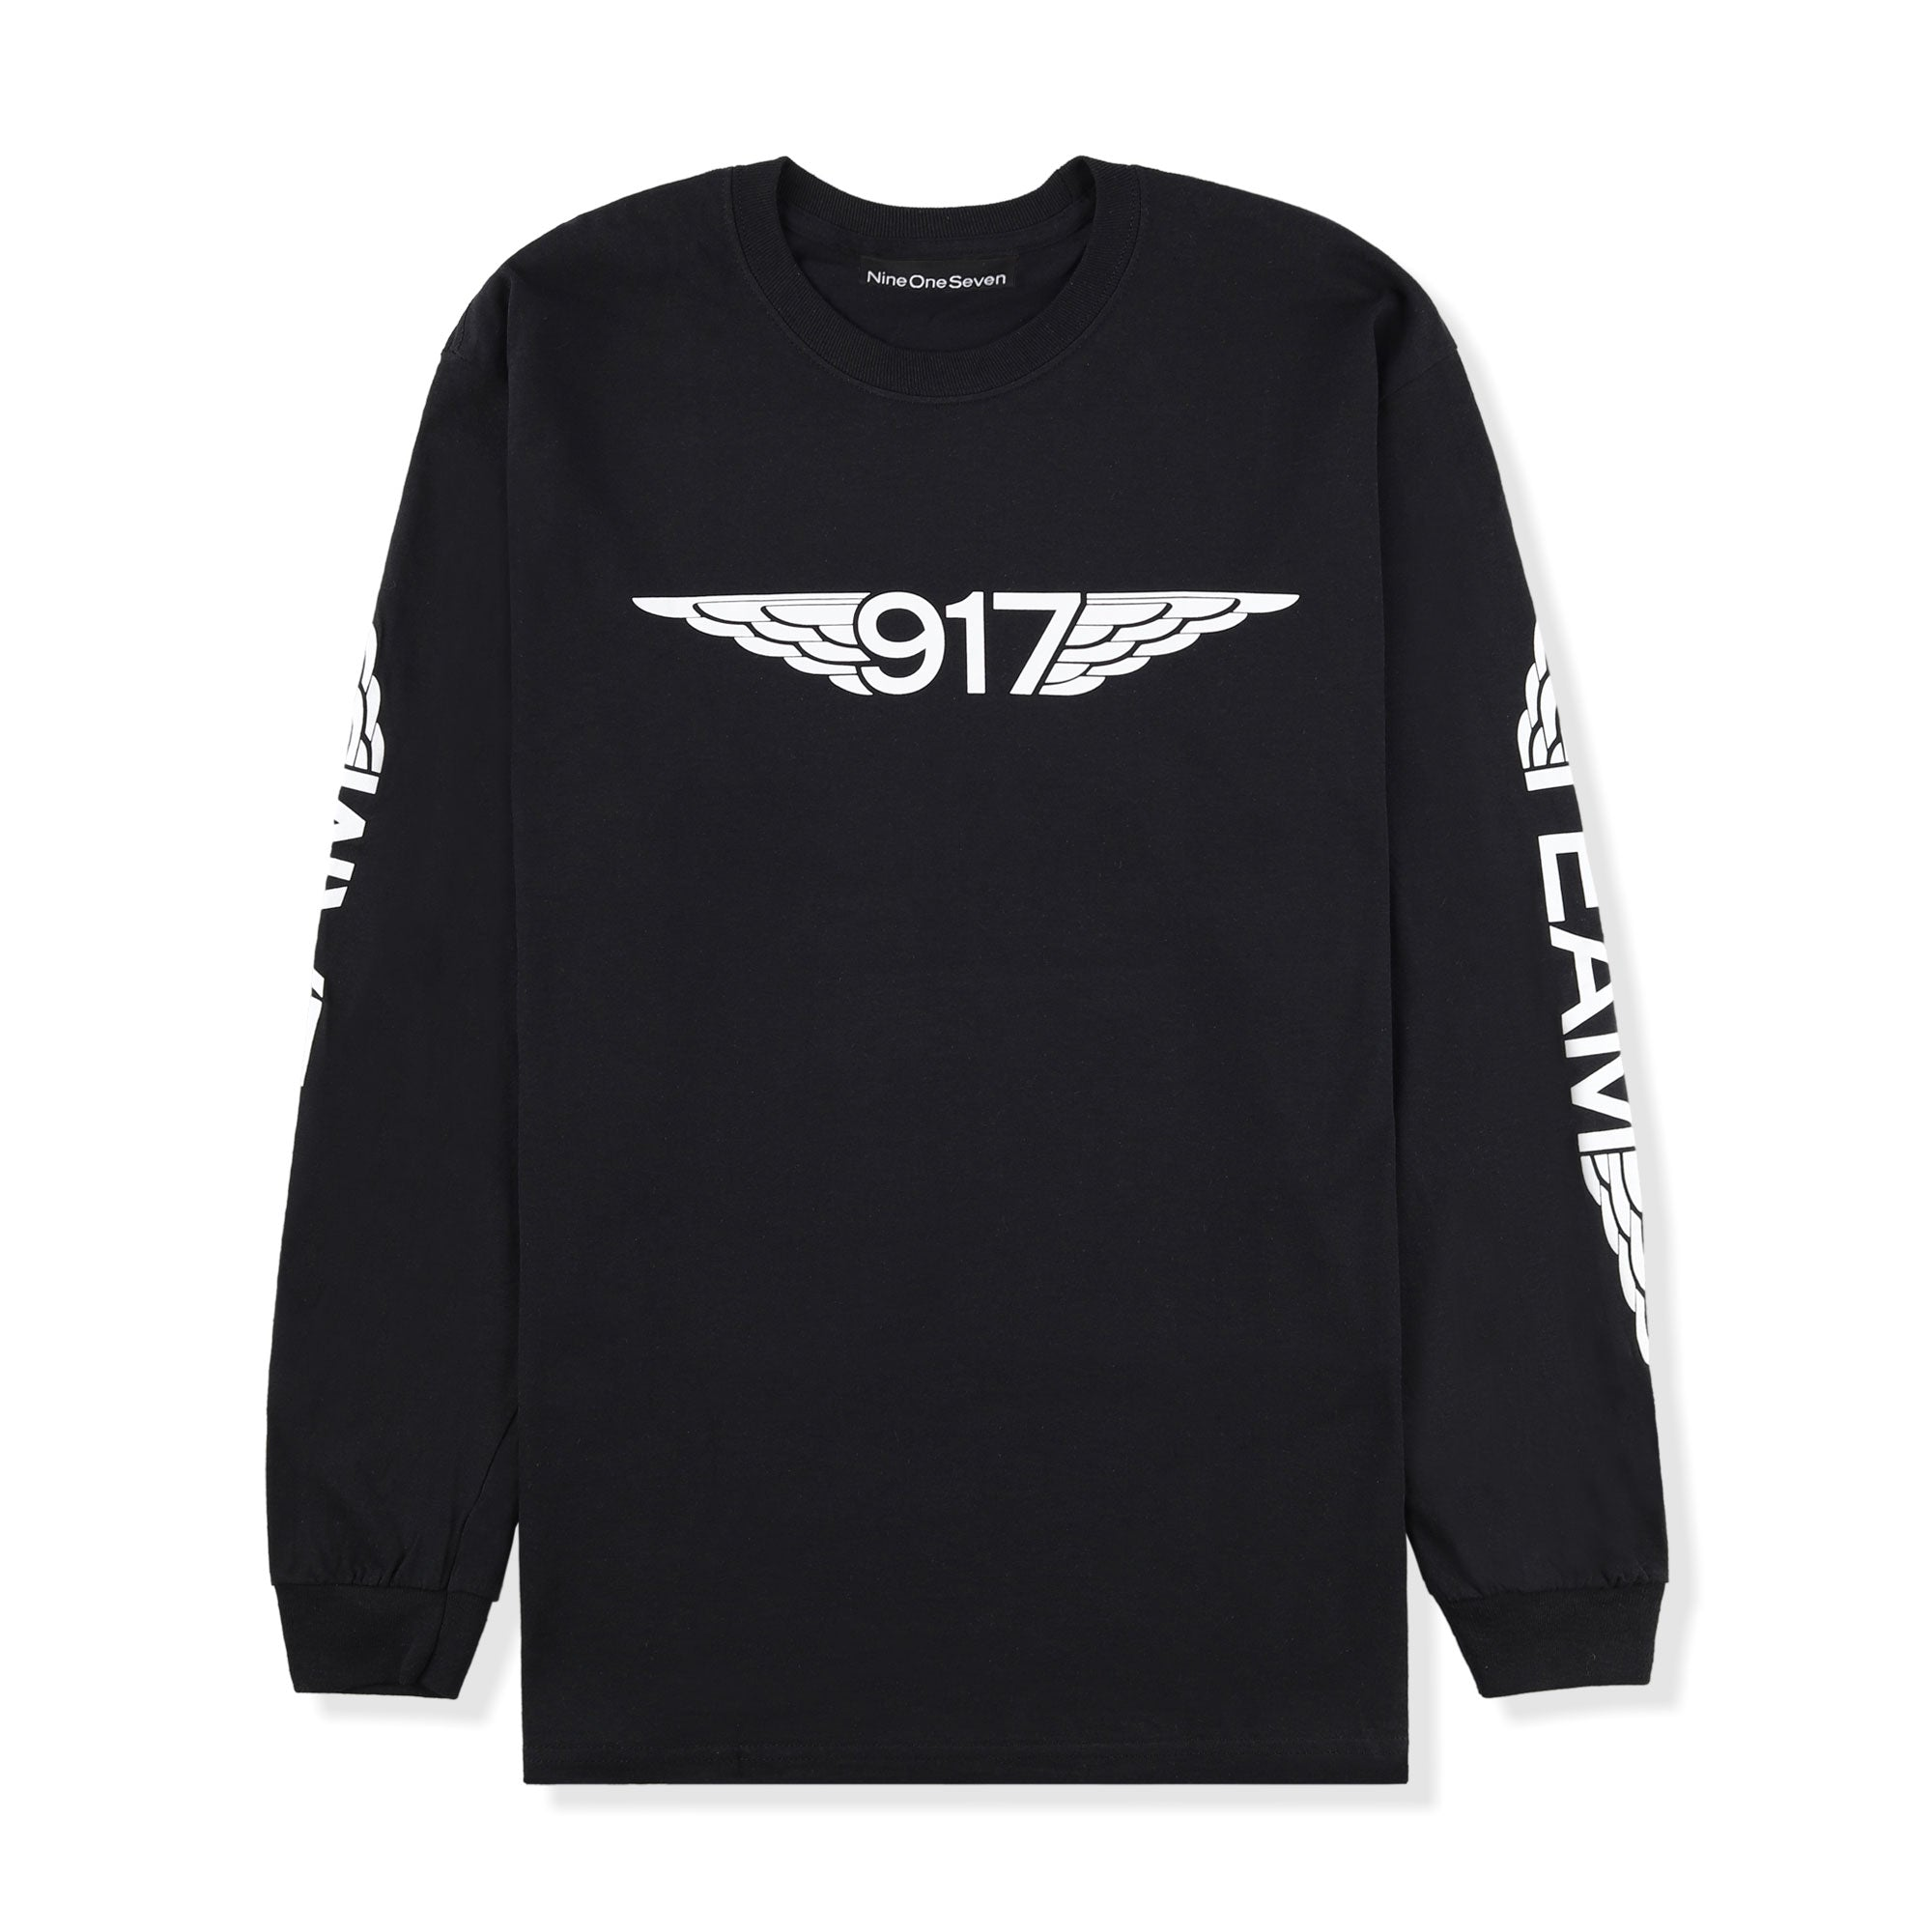 Call Me 917 Team Wings L/S Tee Product Photo #1